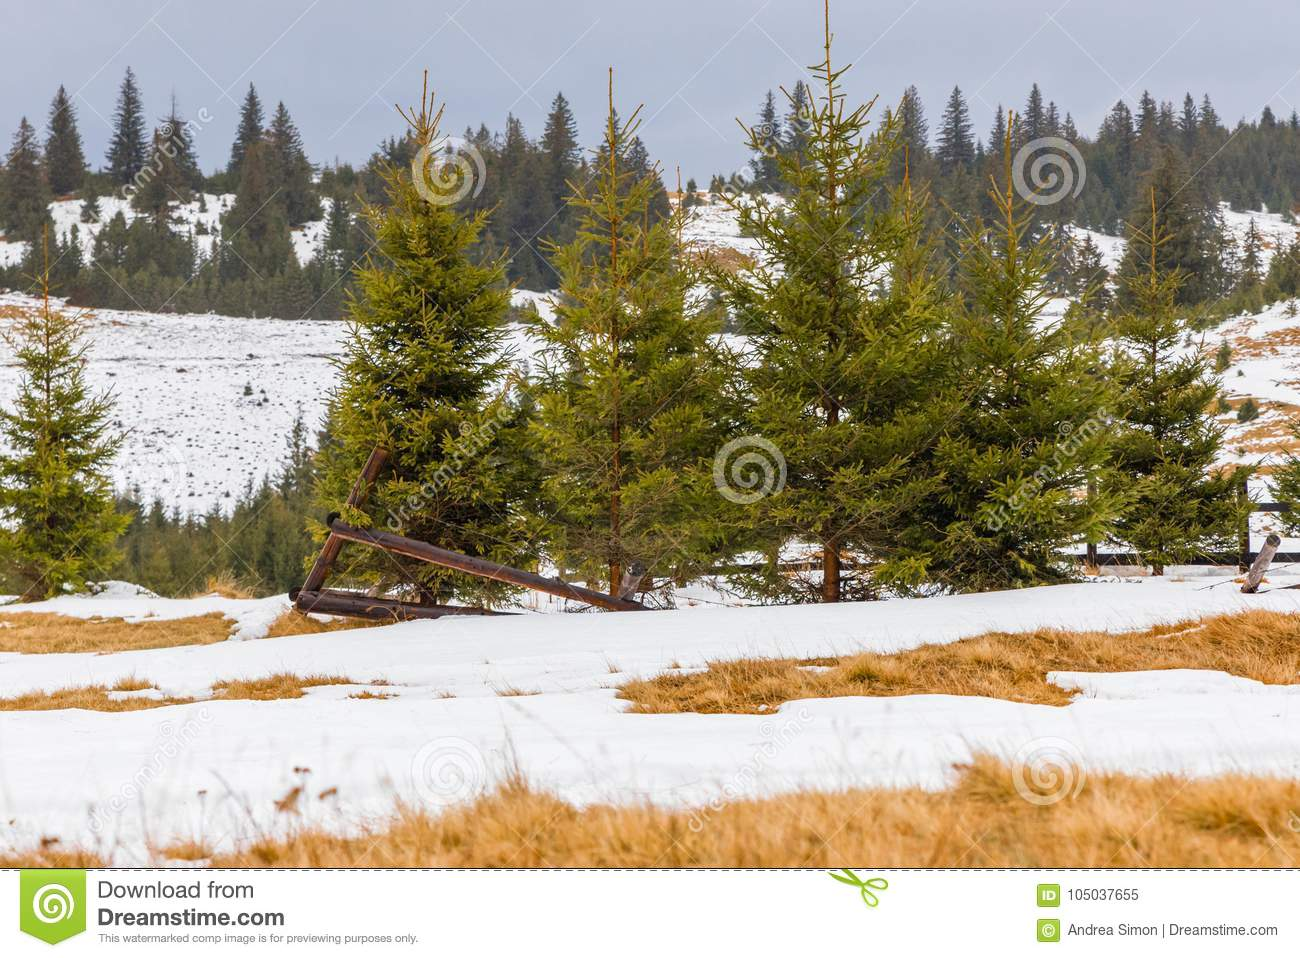 Winter landscape and pine trees